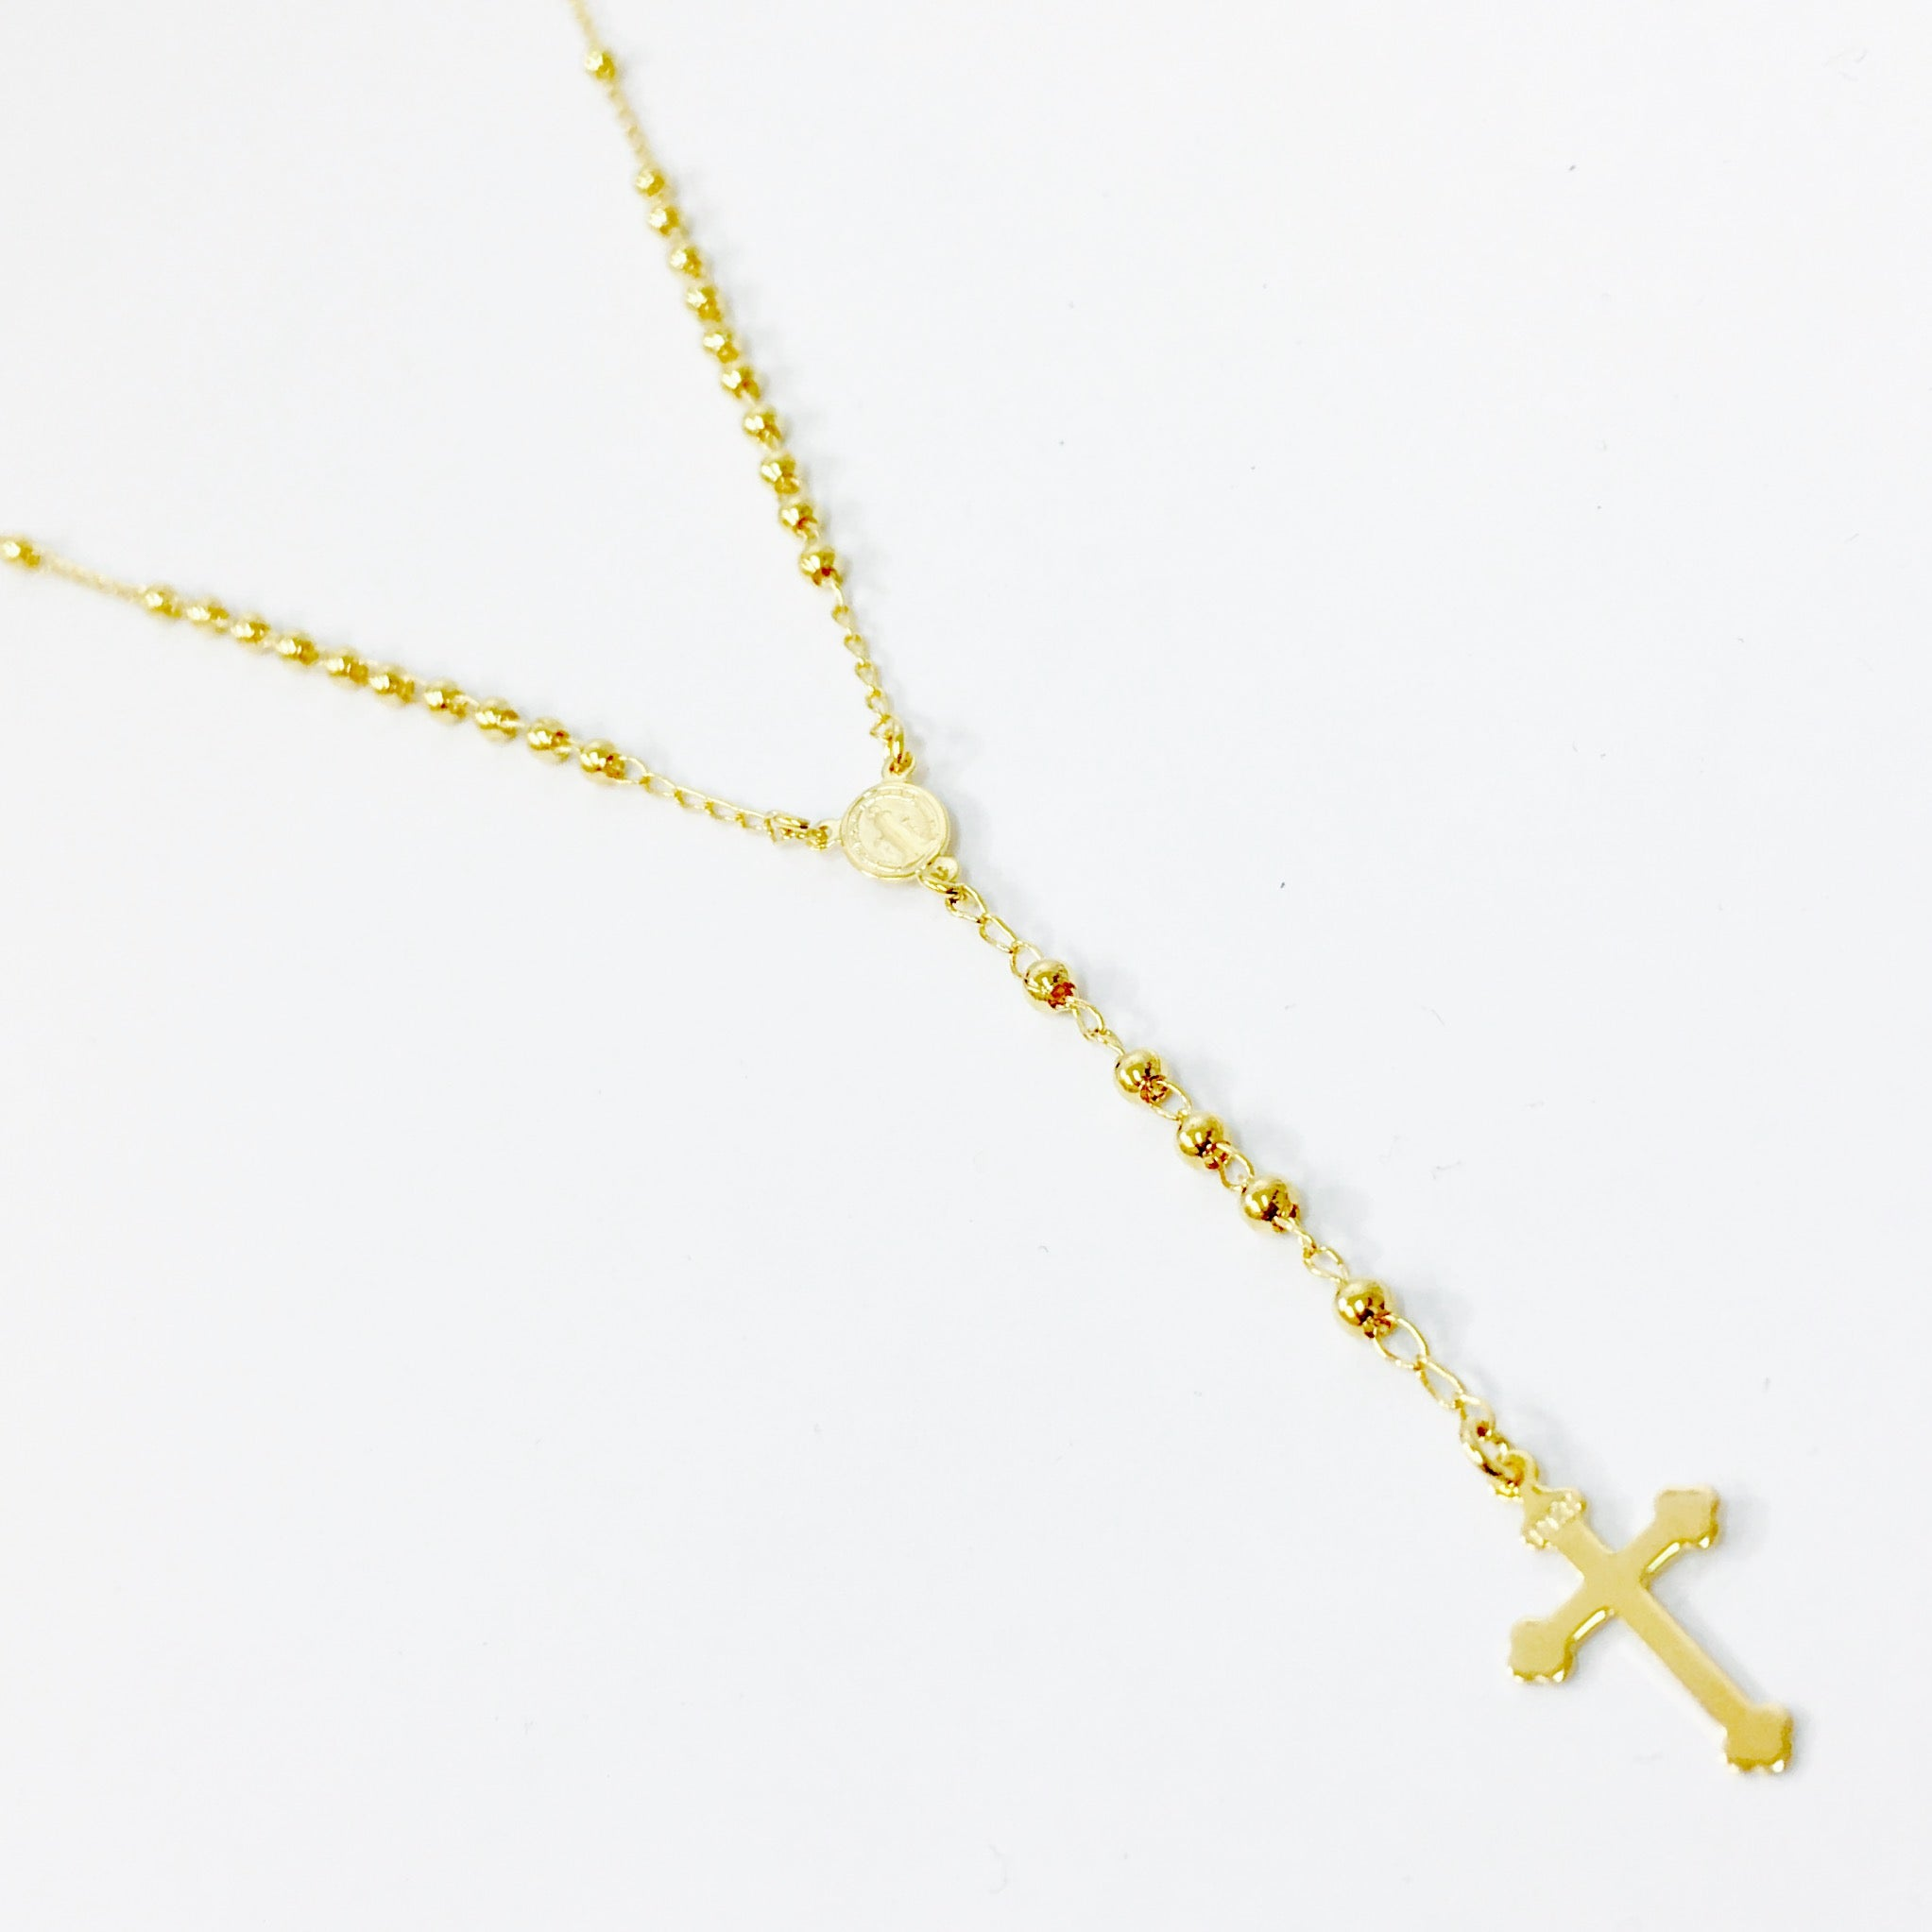 GOLD ROSARY NECKLACE - Wonderfuletta